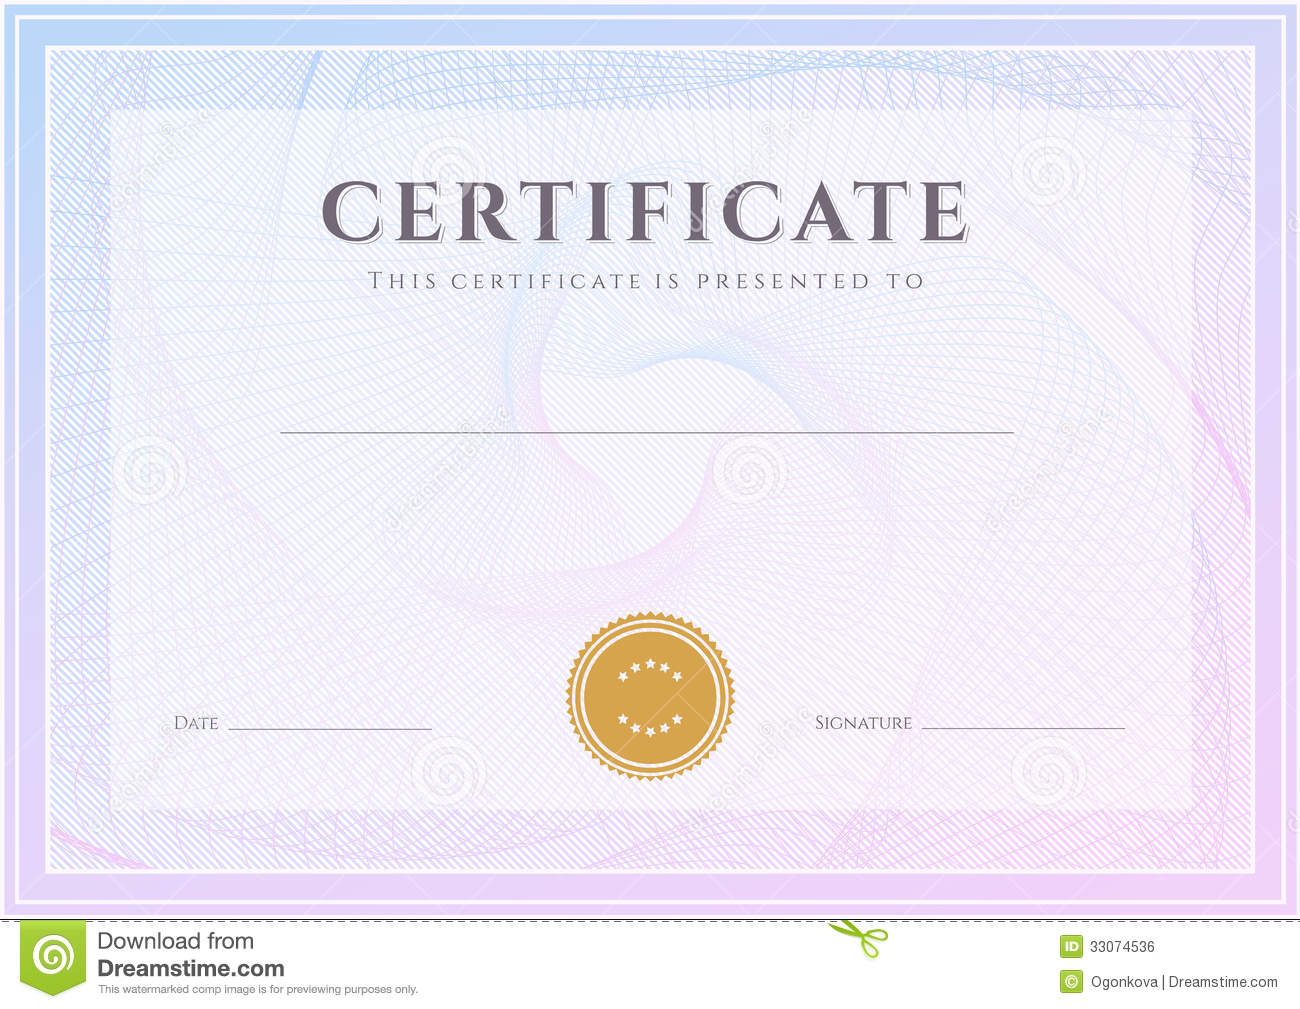 Certificate diploma template award pattern stock vector certificate diploma template award pattern yadclub Image collections